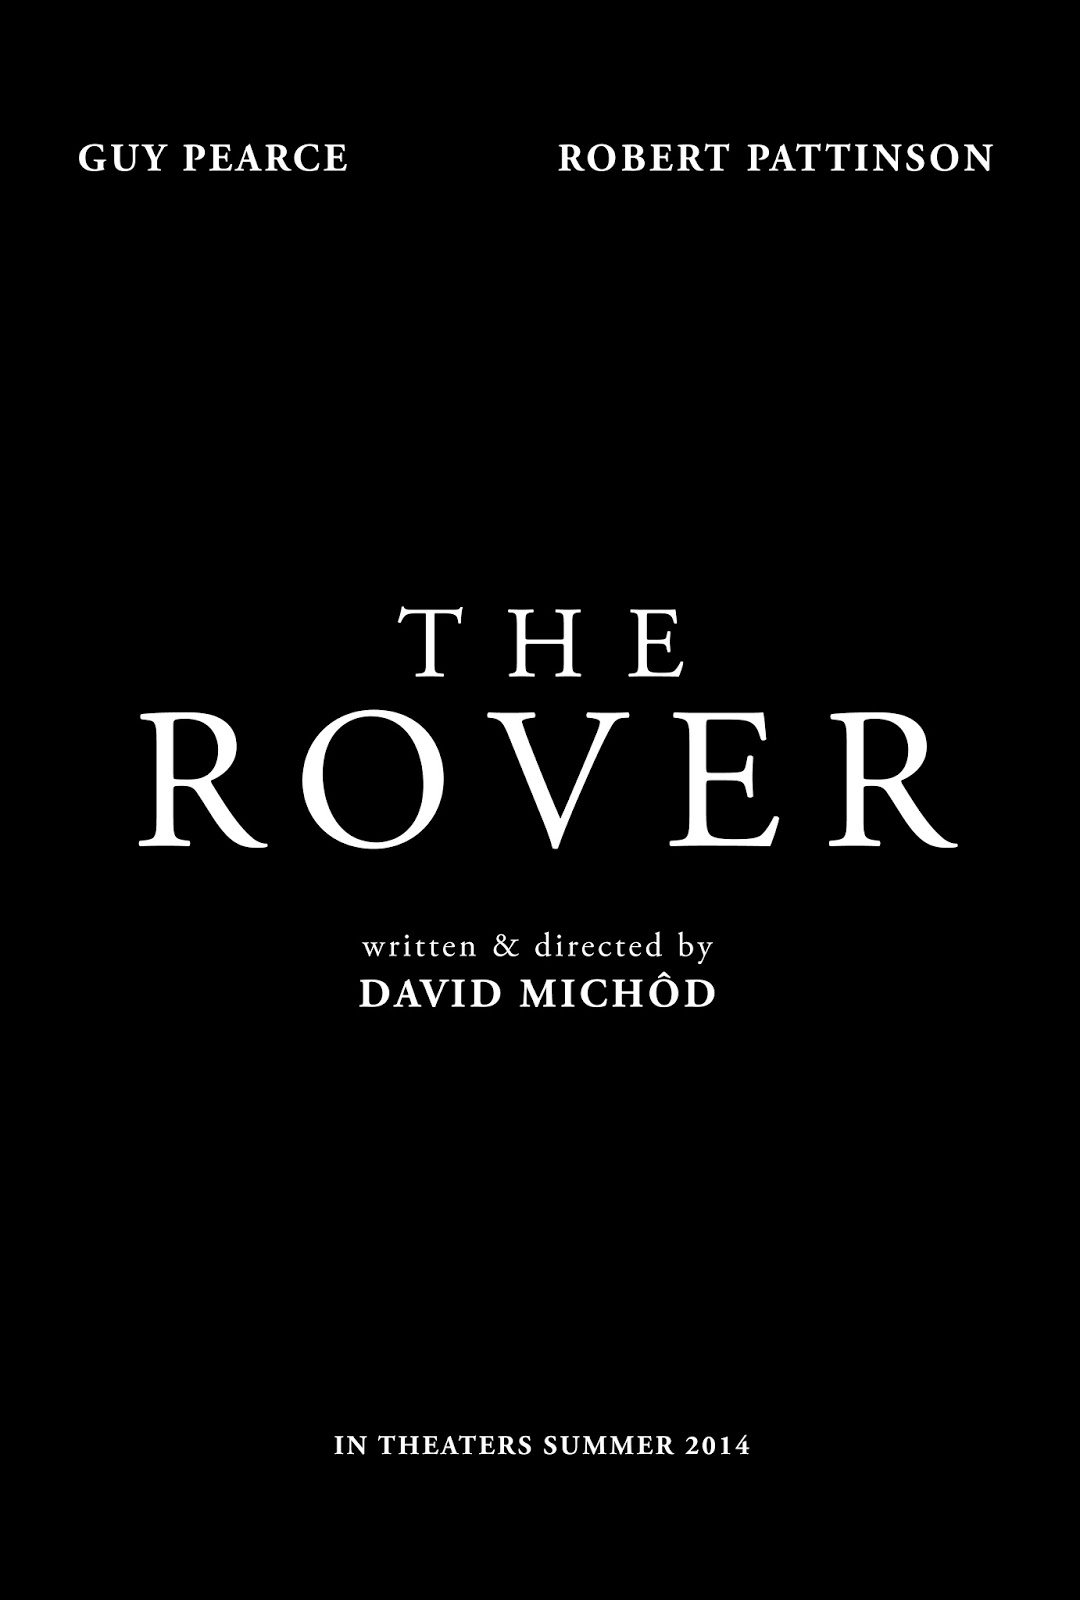 The Rover Movie Film 2014 - Sinopsis